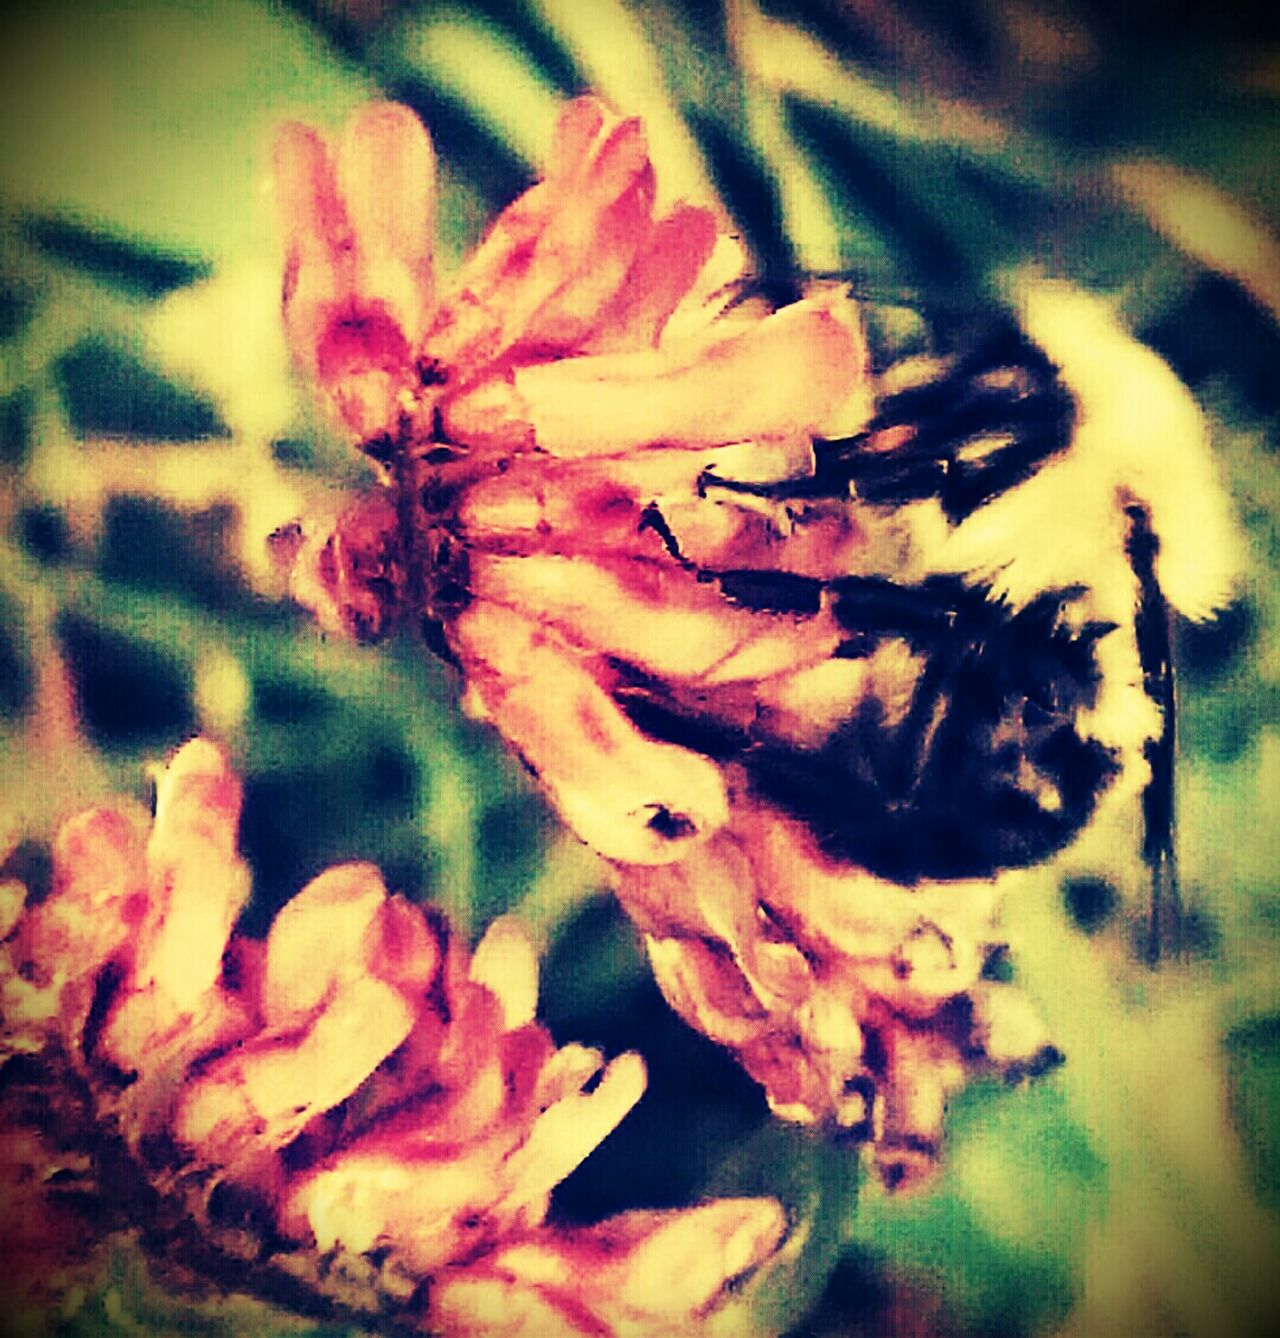 ...the bumble bee...Macro Beauty Showcase: January Beautiful World Bumble Bee Bumblebeesonflowers Flowers, Nature And Beauty Sony Xperia EyeEm Best Shots - Macro / Up Close Eyeemphotography From My Point Of View Intricate Nature